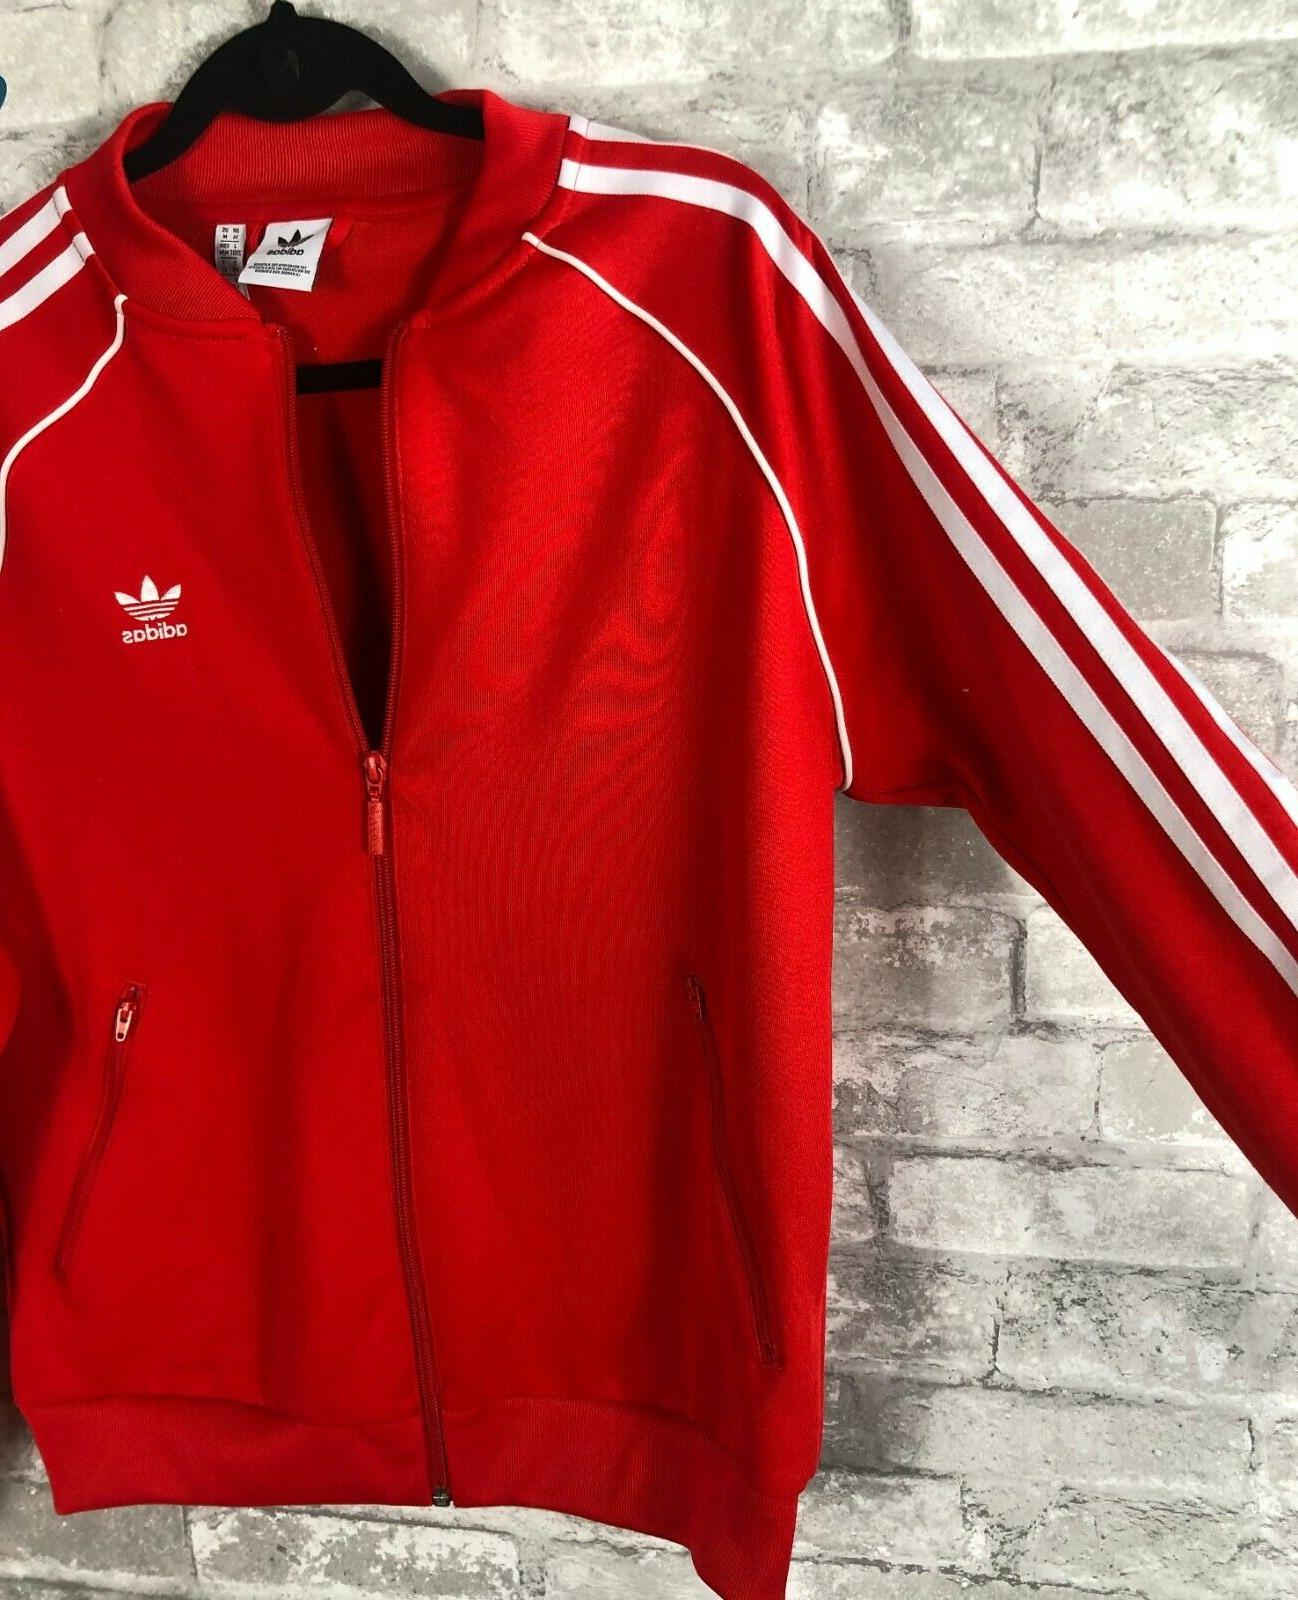 adidas Jacket Red MEDIUM